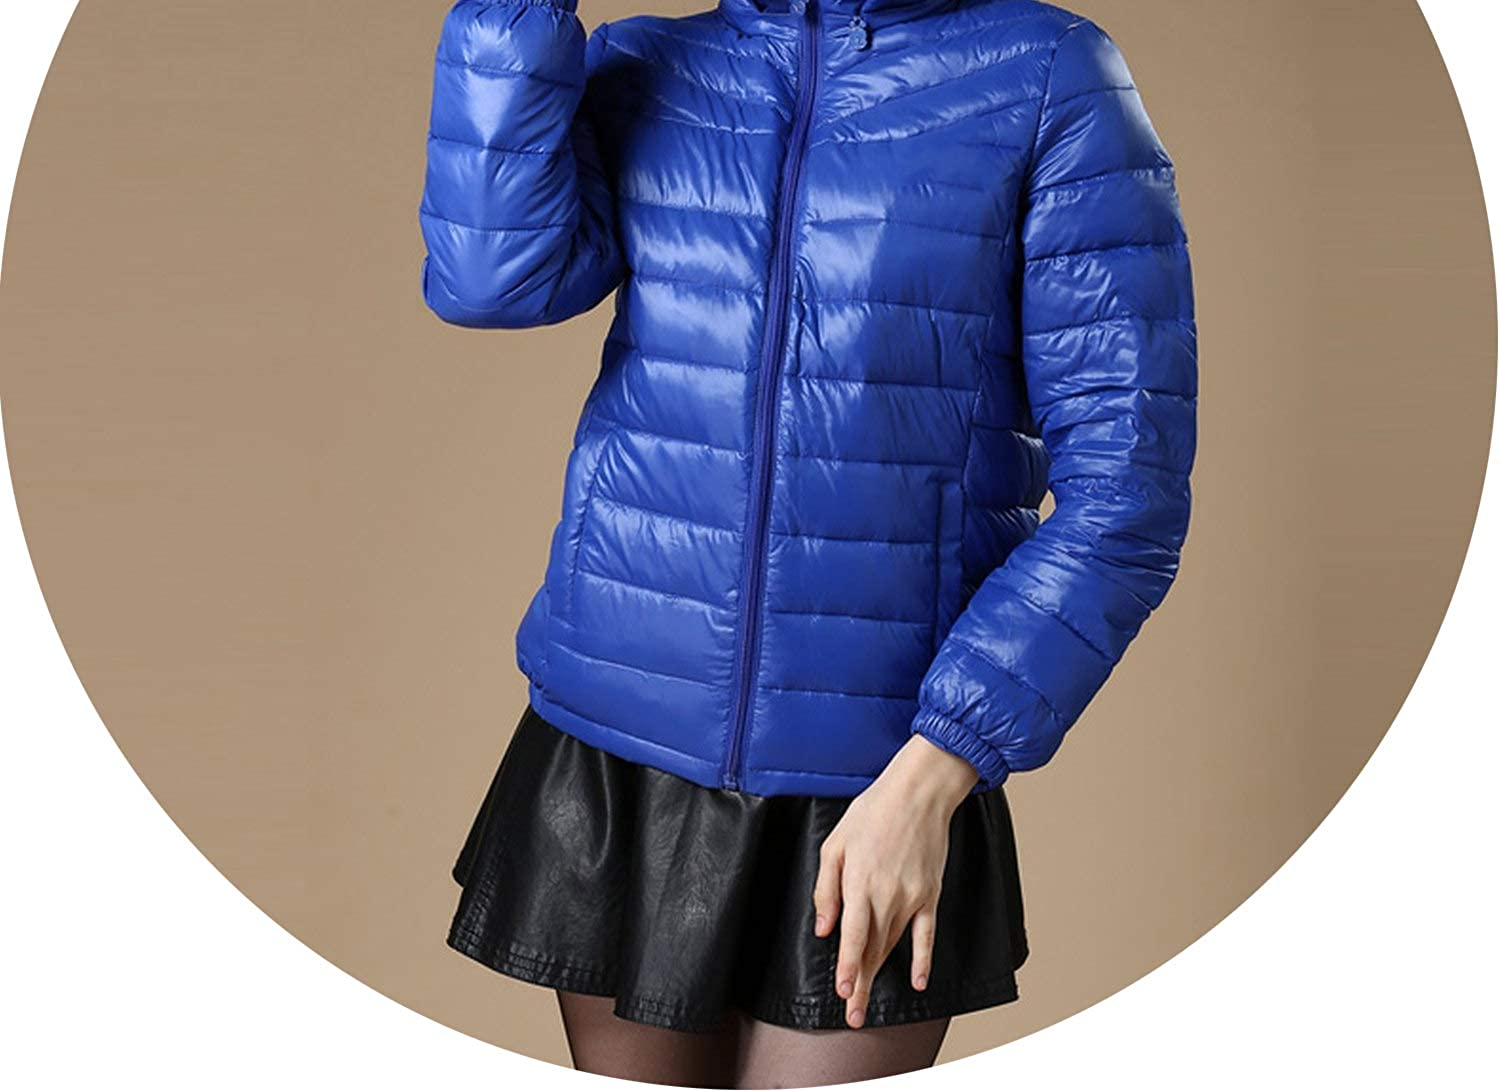 ShowShowFashion outerwearcoats Winter Women Jacket Women's Hooded Light Down Jackets Warm Winter Coat Parkas